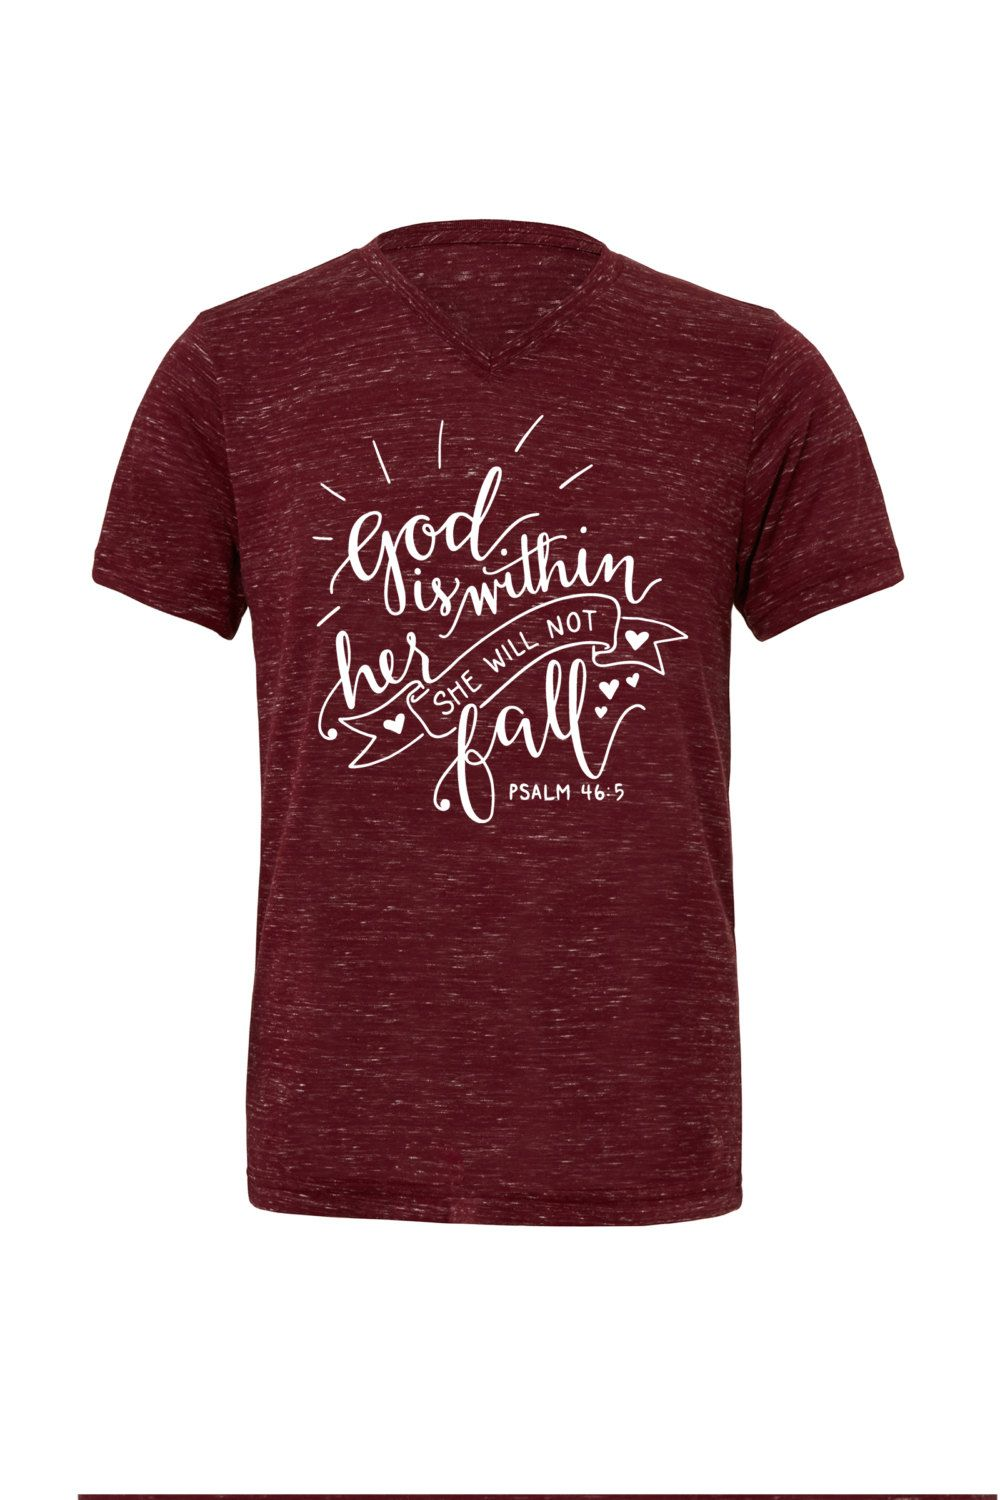 e06ab886deb7c Christian shirt - Psalm 46:5 - vneck shirt- faith apparel - God is ...